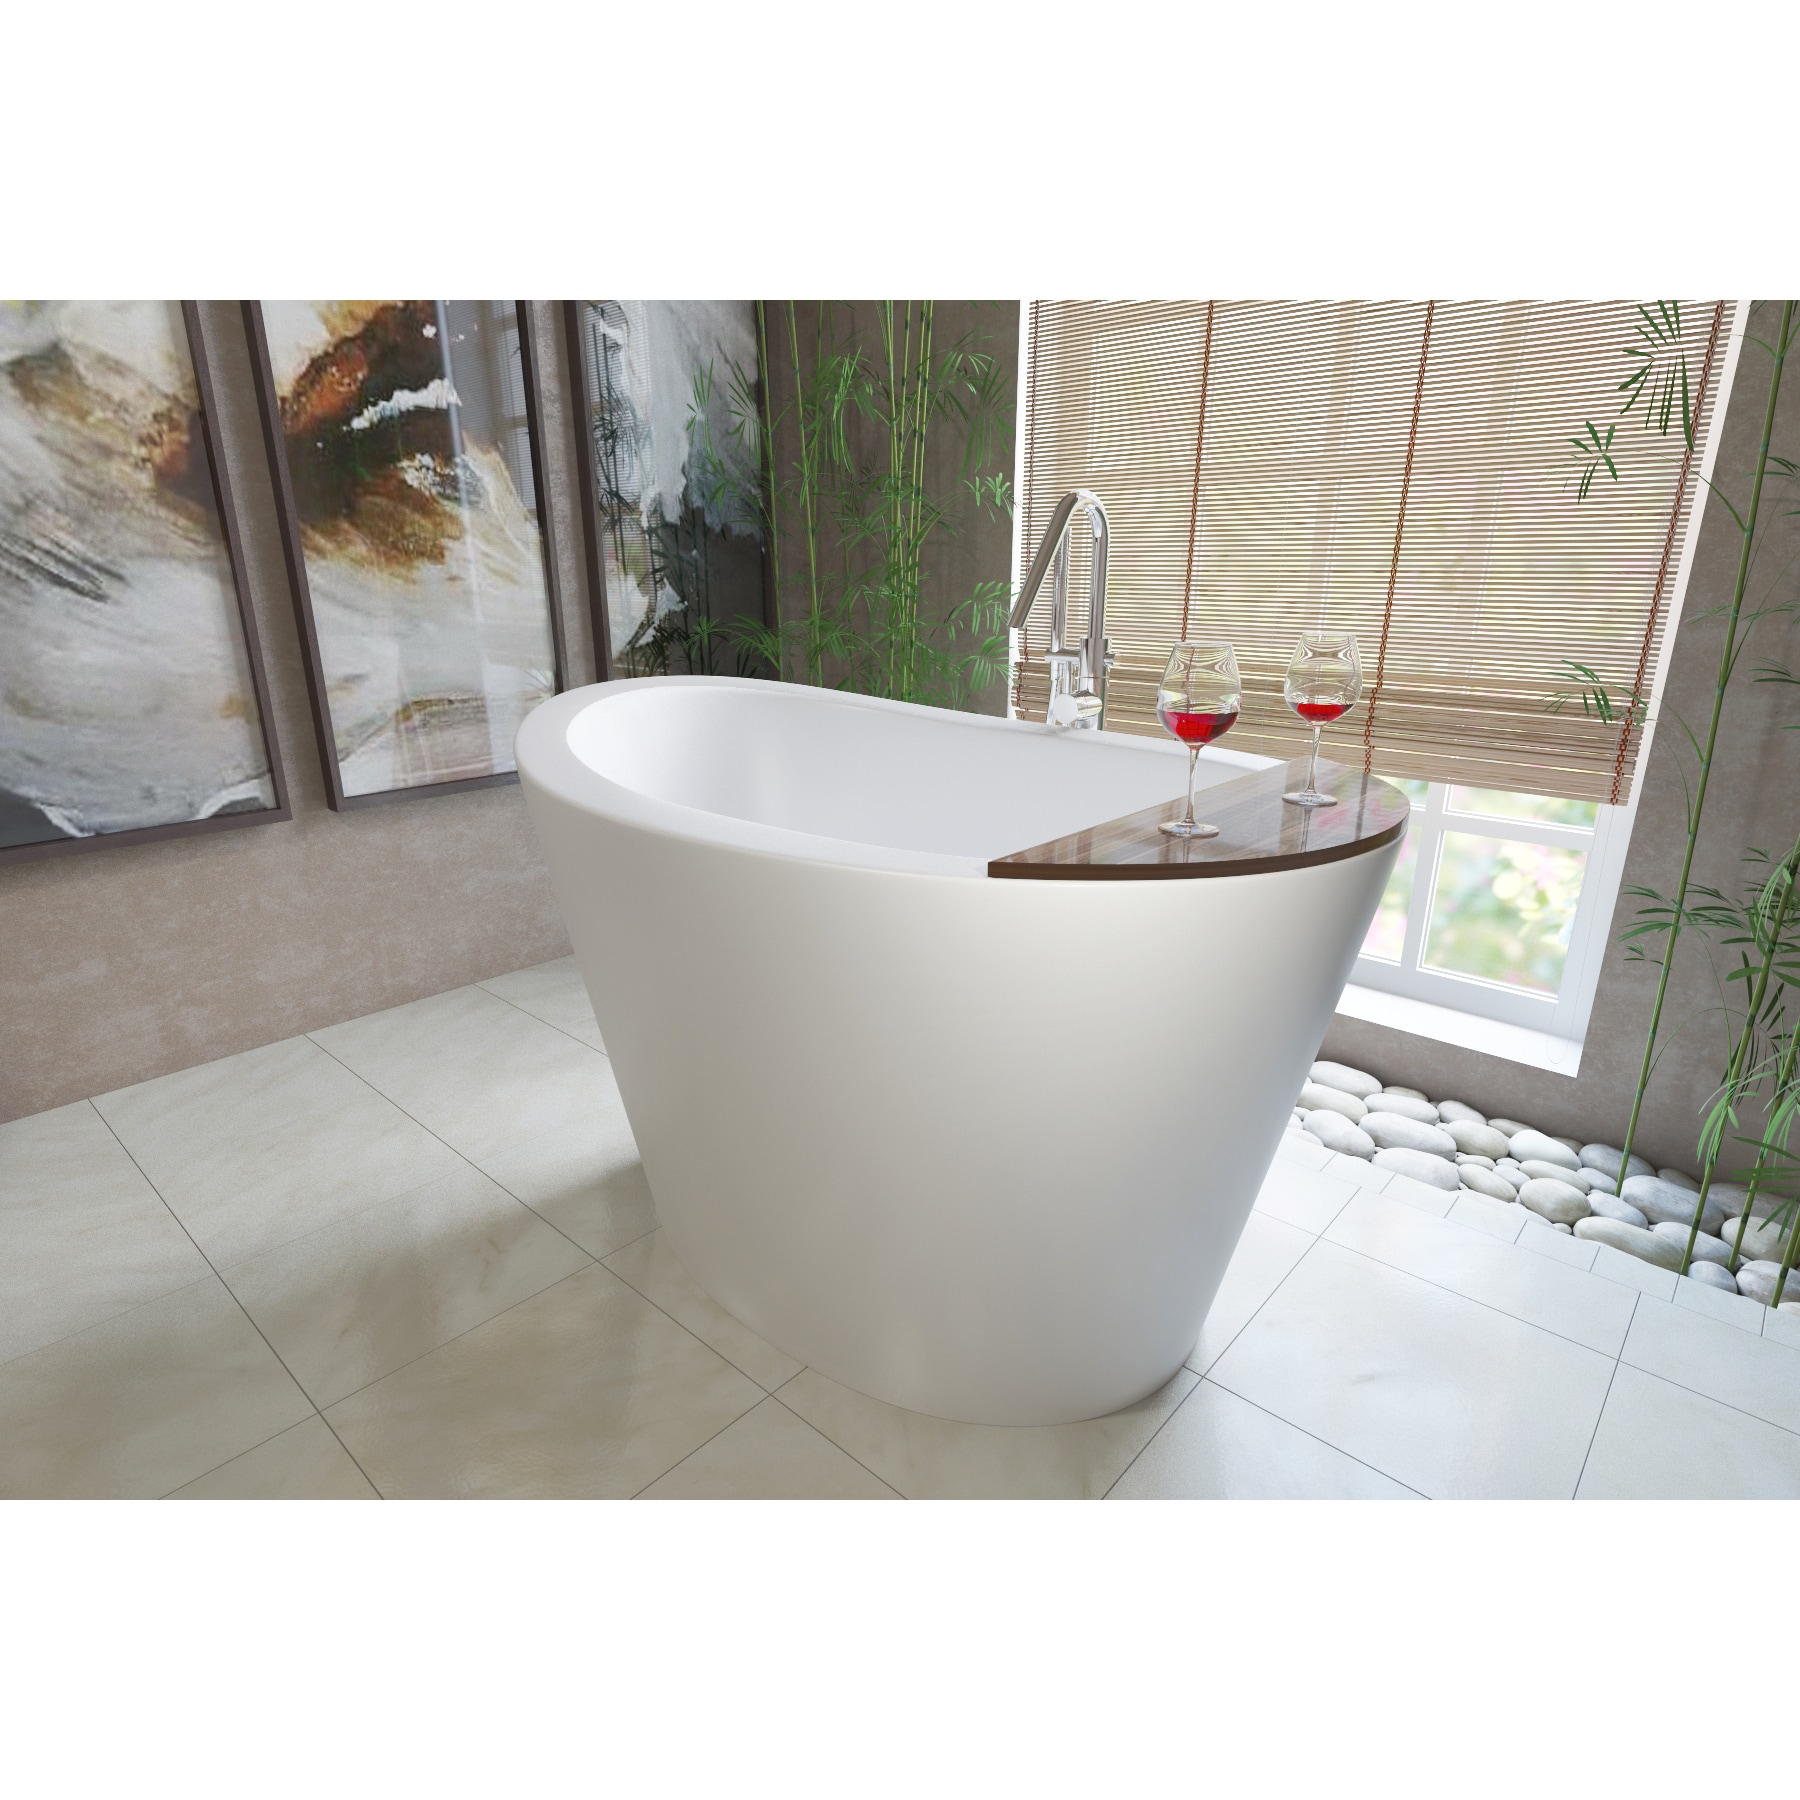 Shop Aquatica True Ofuro Freestanding Stone Japanese Soaking Bathtub ...